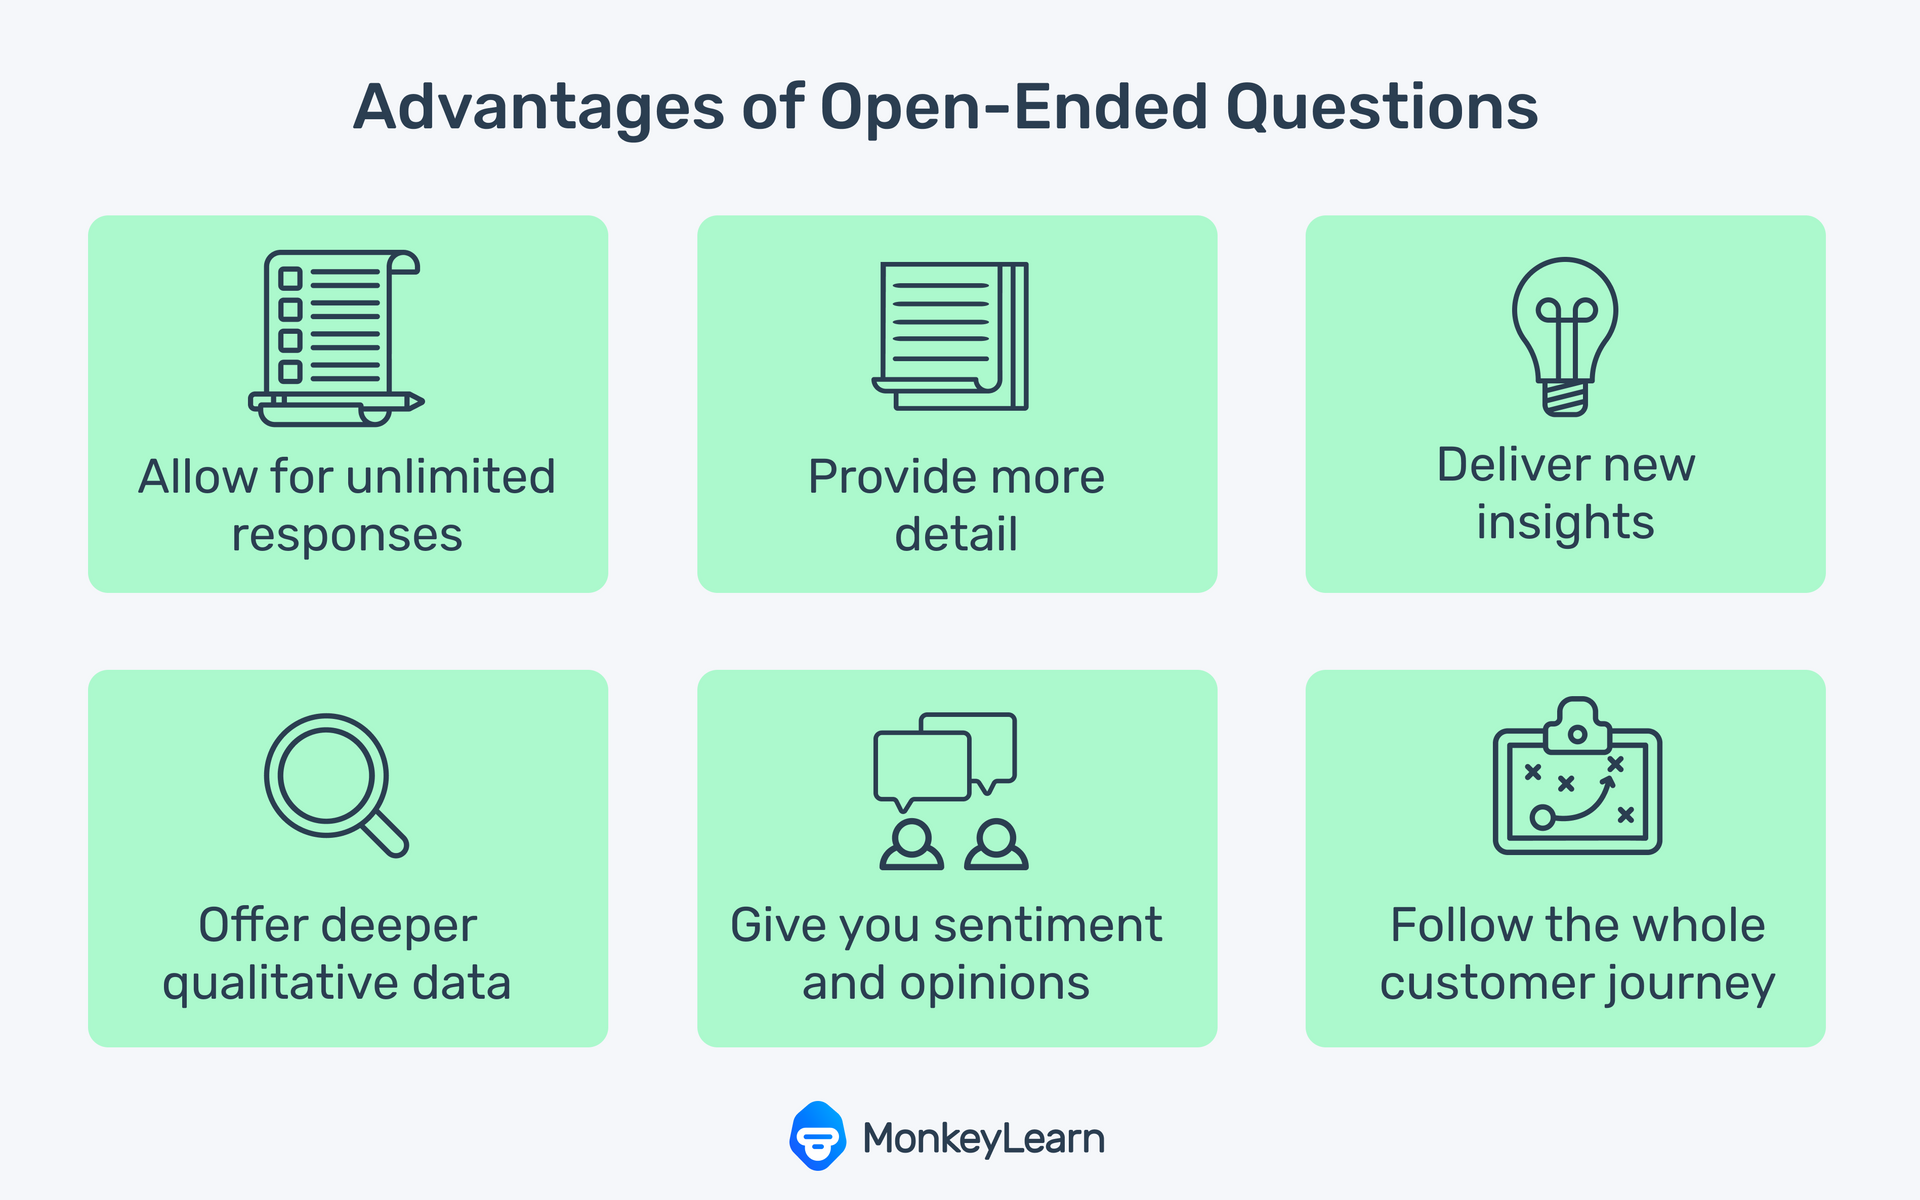 List of advantages of open ended questions.